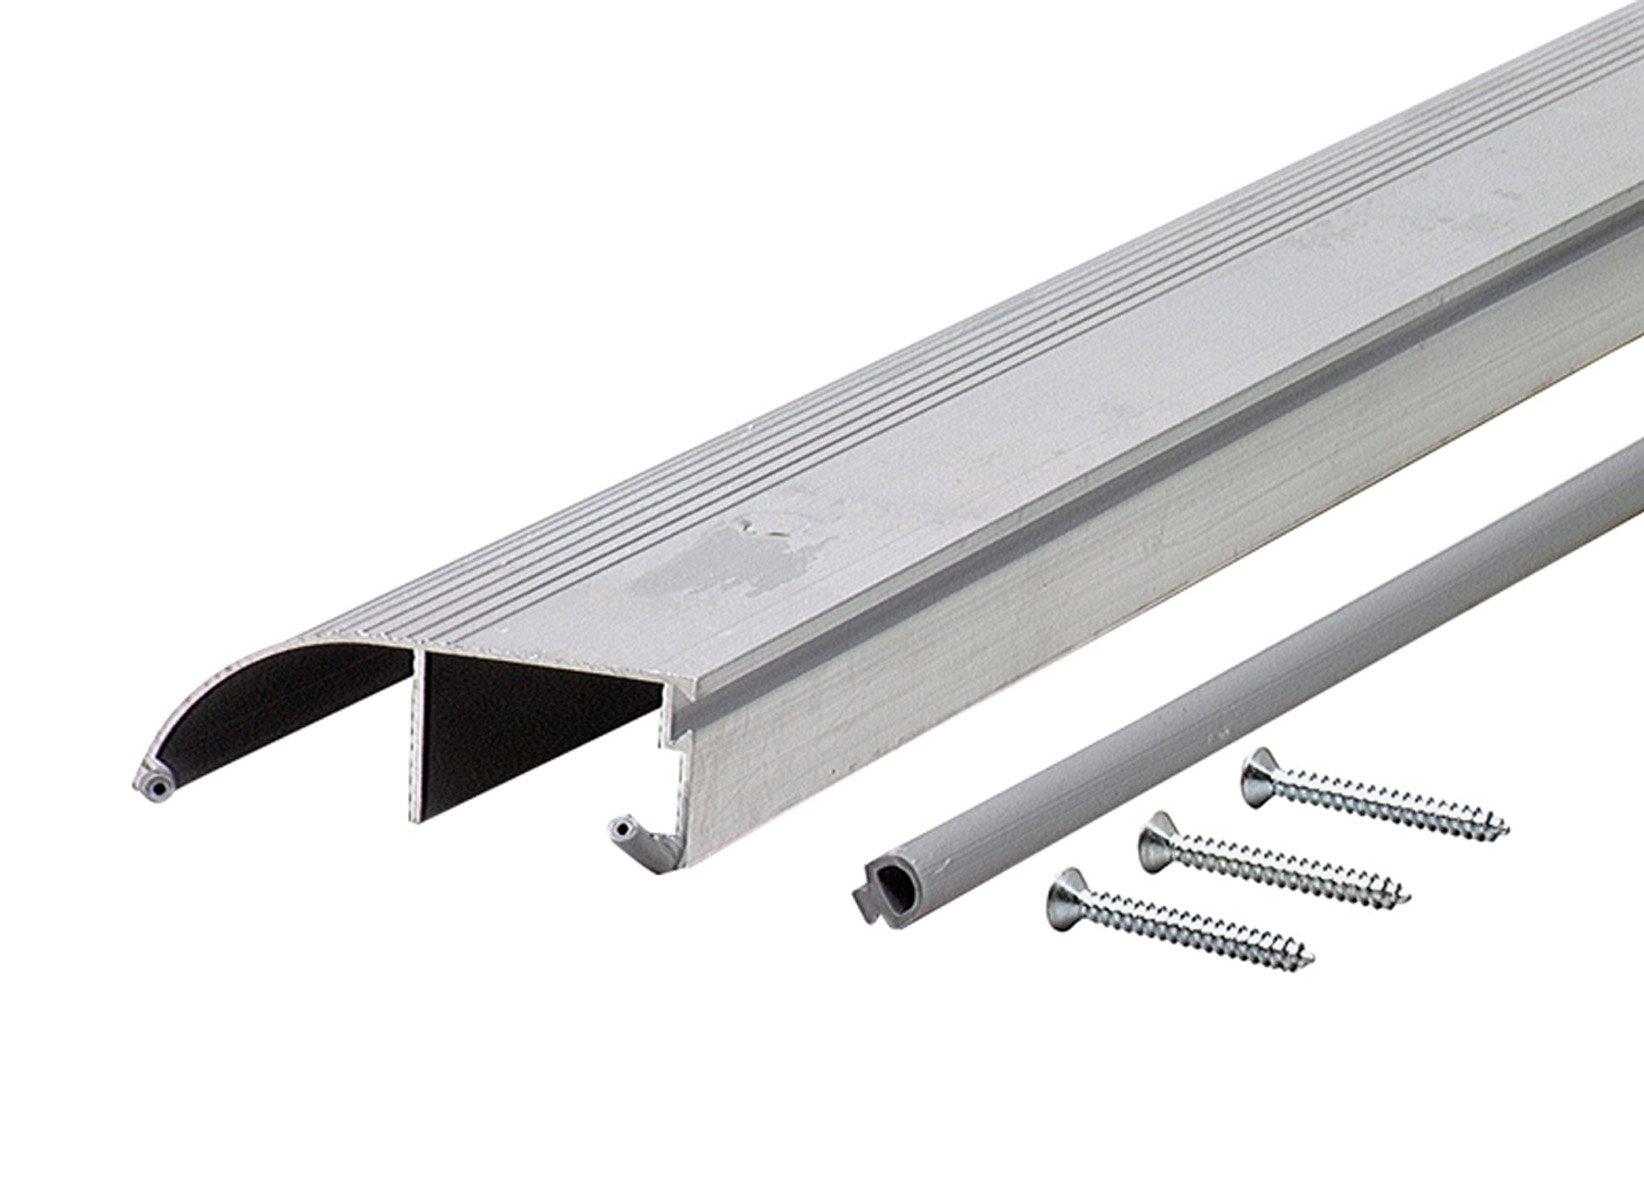 M-D Building Products 69698 1-1/4-Inch by 4-Inch by 72-Inch TH153 Bumper Threshold, Mill